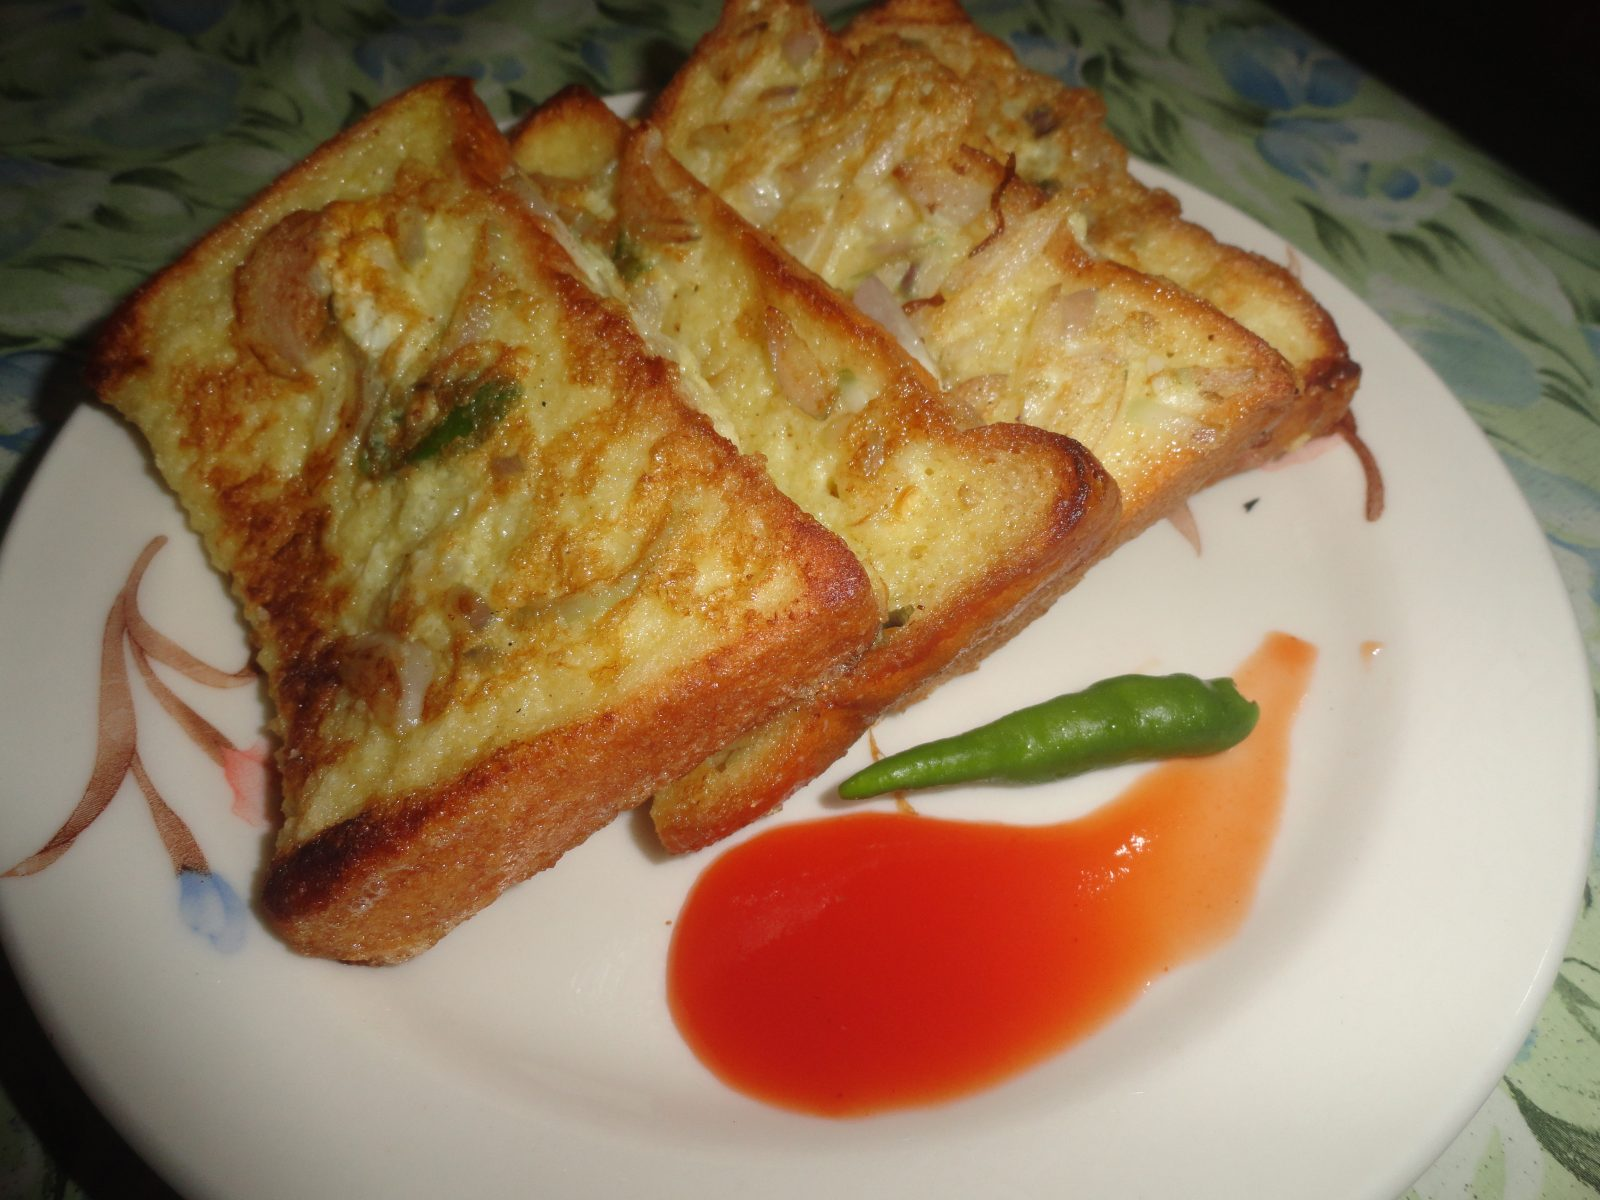 Bombay Toast (Jhal/Mishty) from Mom's Dine